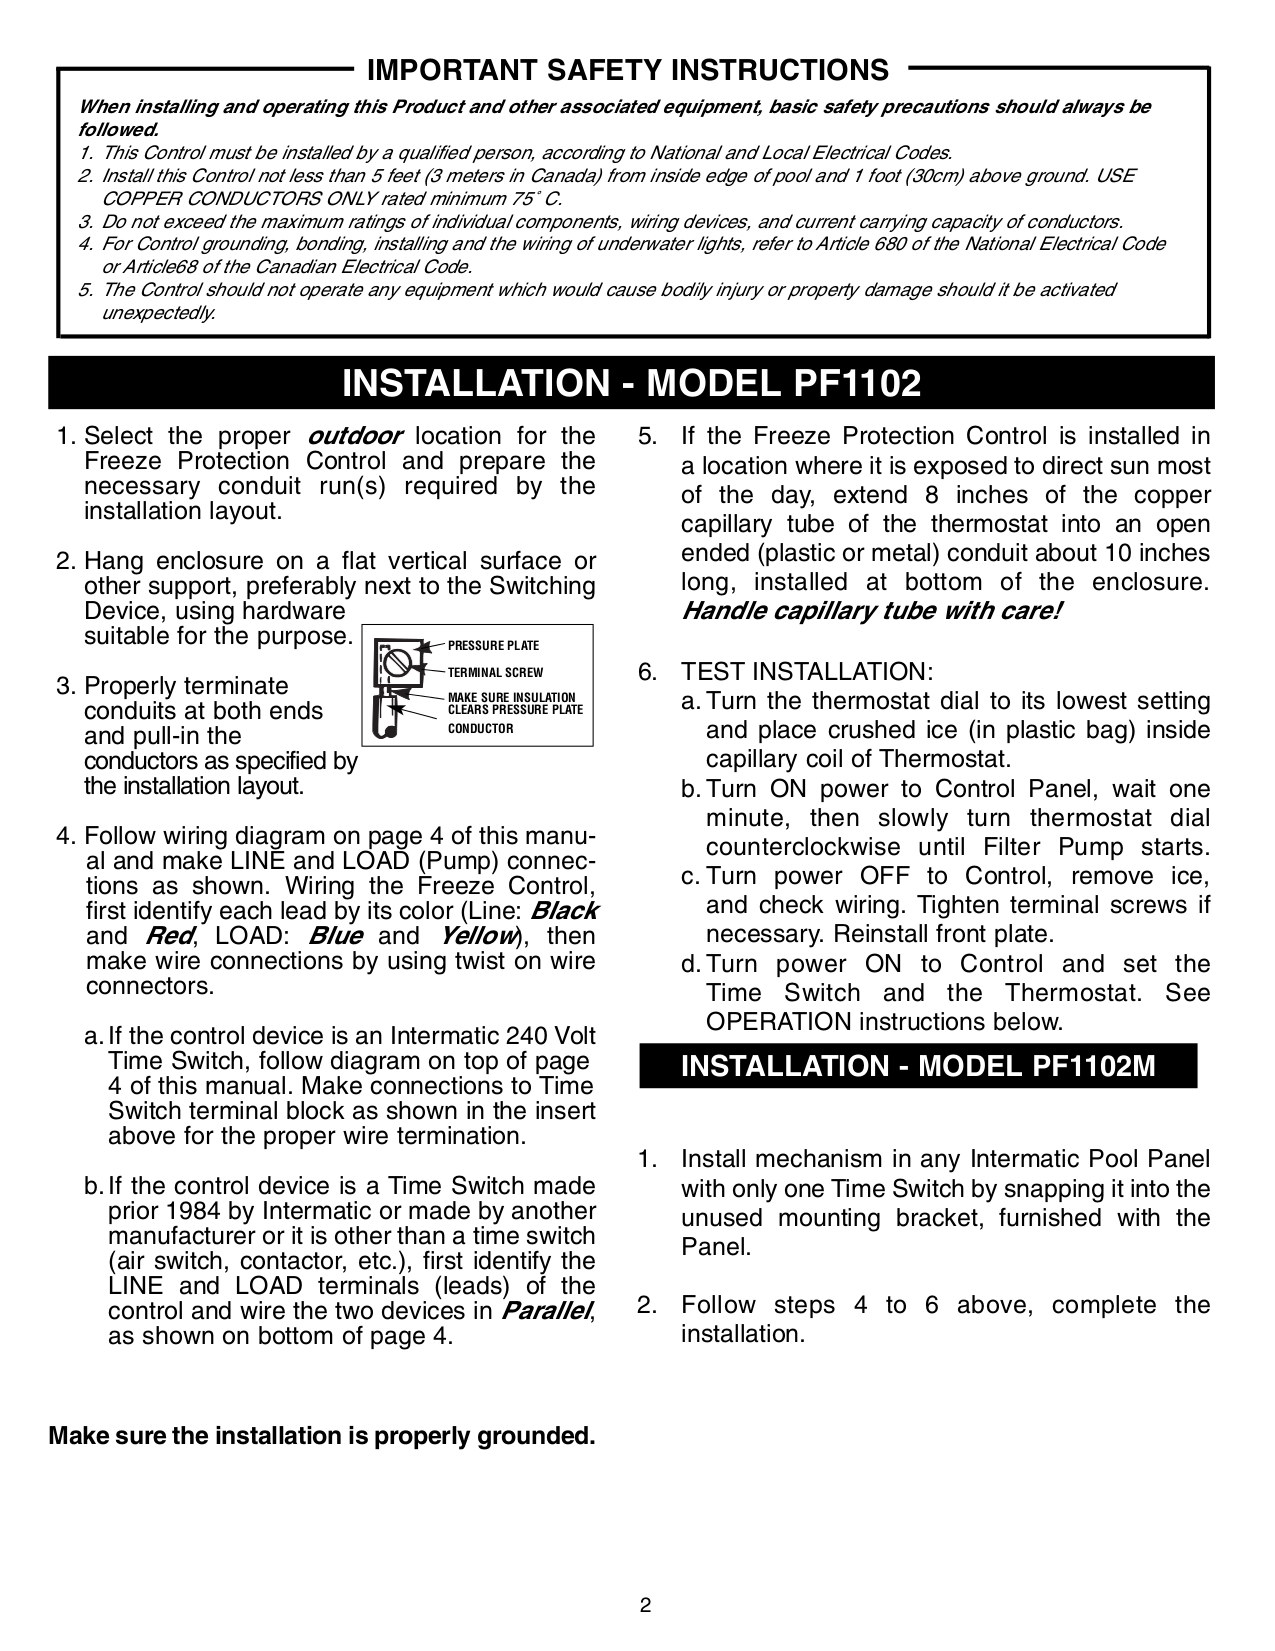 Pdf Manual For Intermatic Other T30000r Protection Device Freeze Protector Pool Wiring Diagram Page Preview